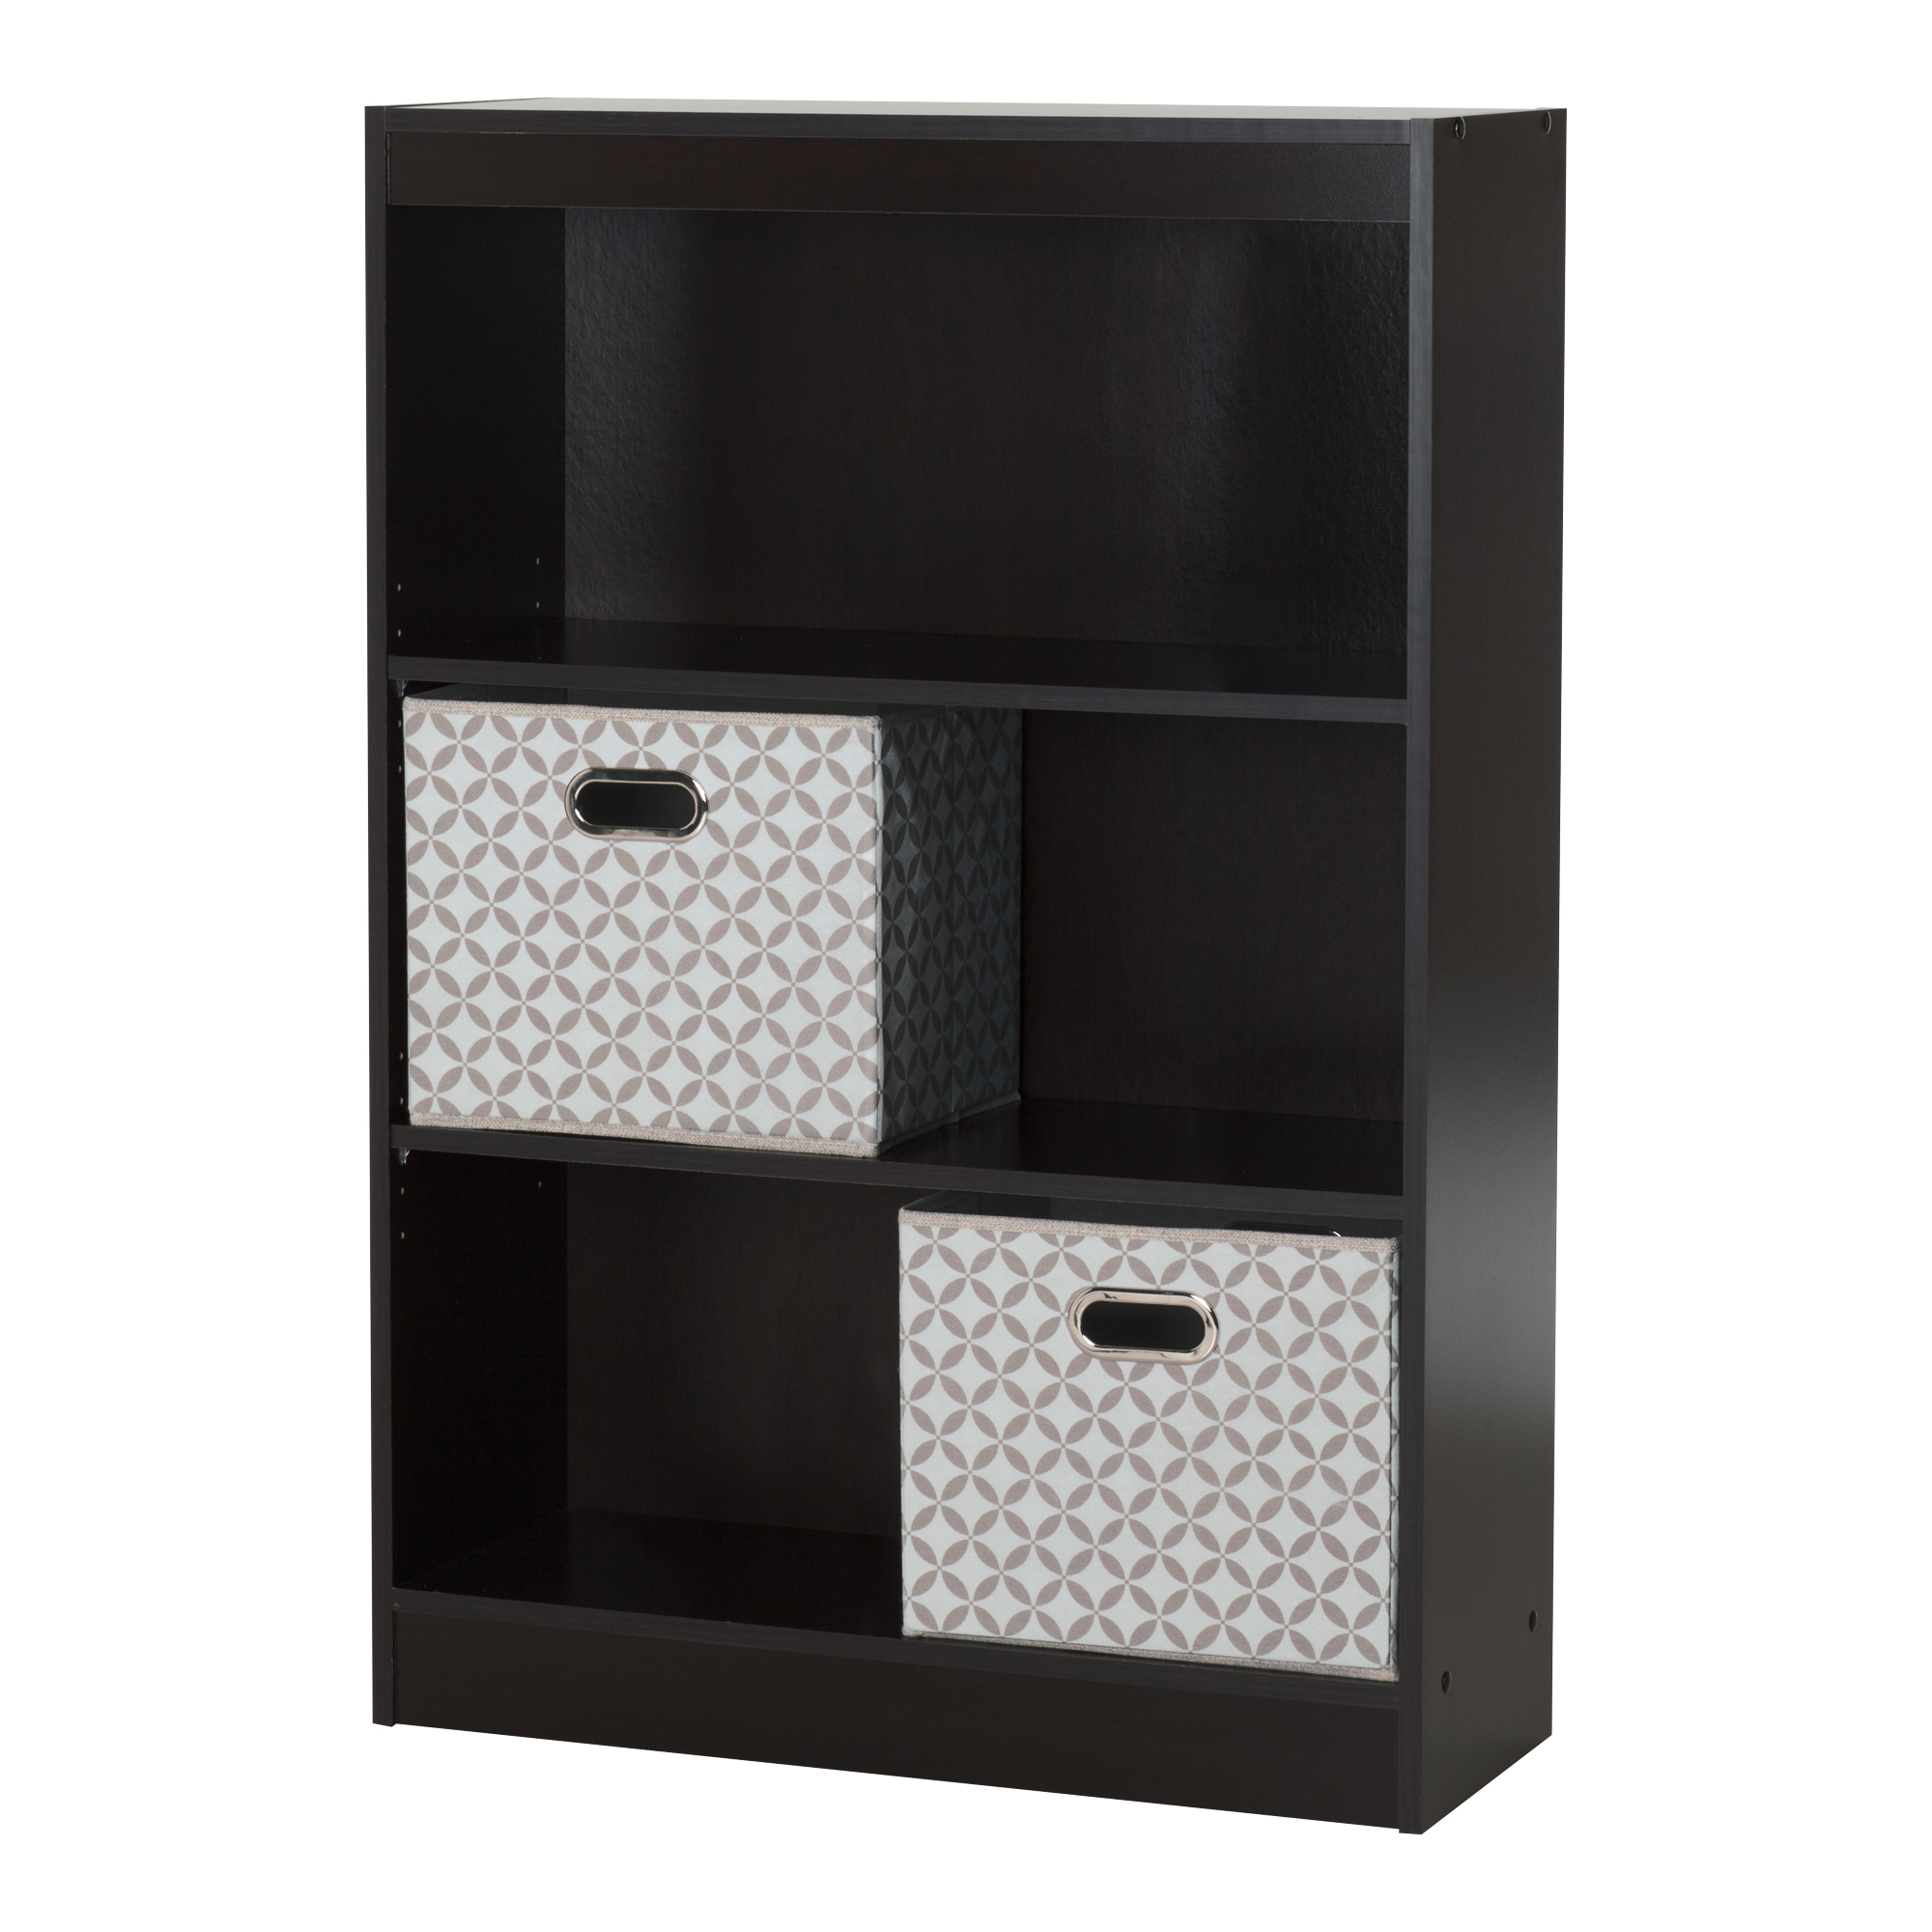 South Shore Axess Chocolate 3-Shelf Bookcase with 2 Fabric Storage Baskets Bundle